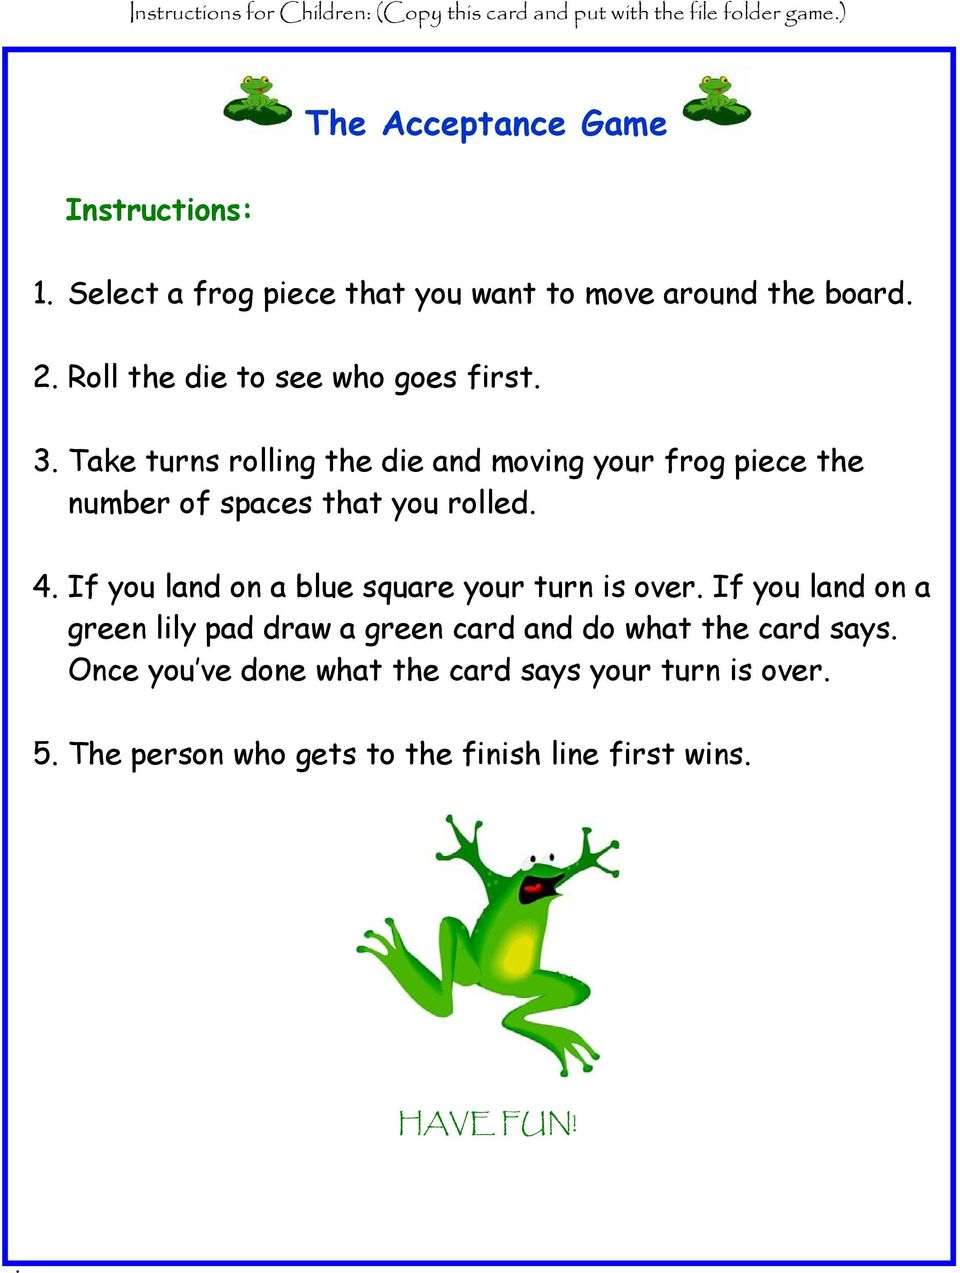 Take turns rolling the die and moving your frog piece the number of spaces that you rolled. 4.